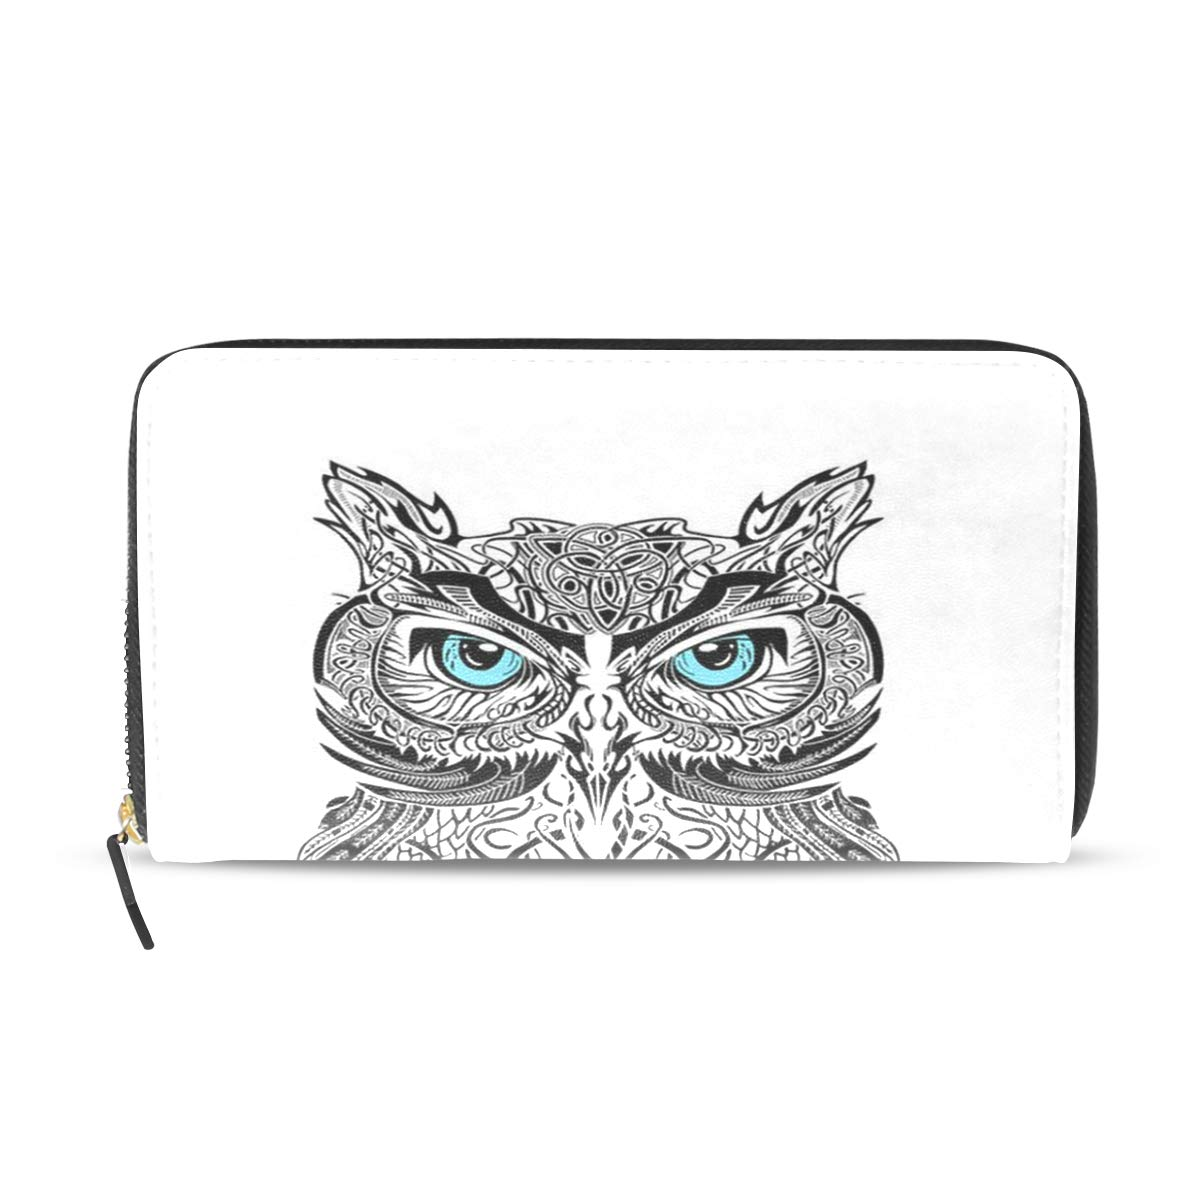 Womens Wallets Black And White Owl Leather Passport Wallet Coin Purse Girls Handbags